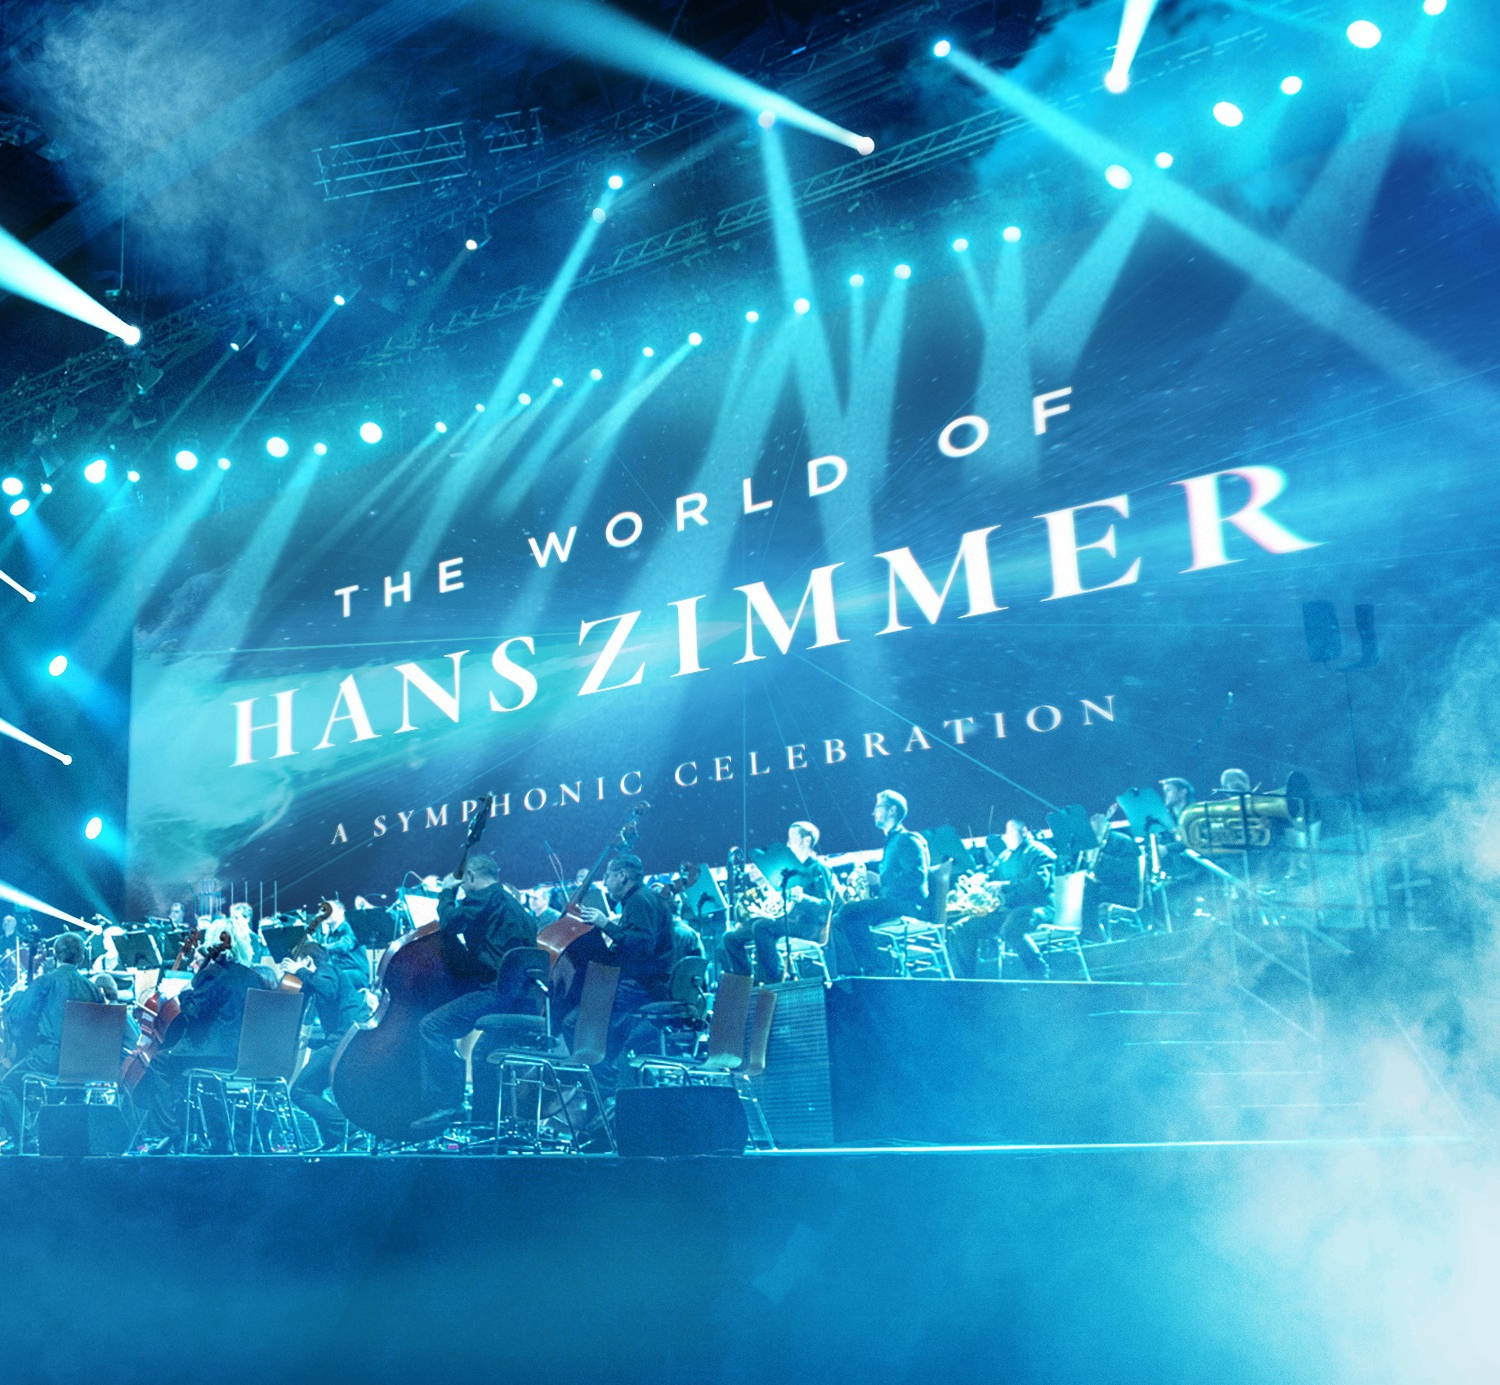 The World Of Hans Zimmer A Symphonic Celebration Am 12 November